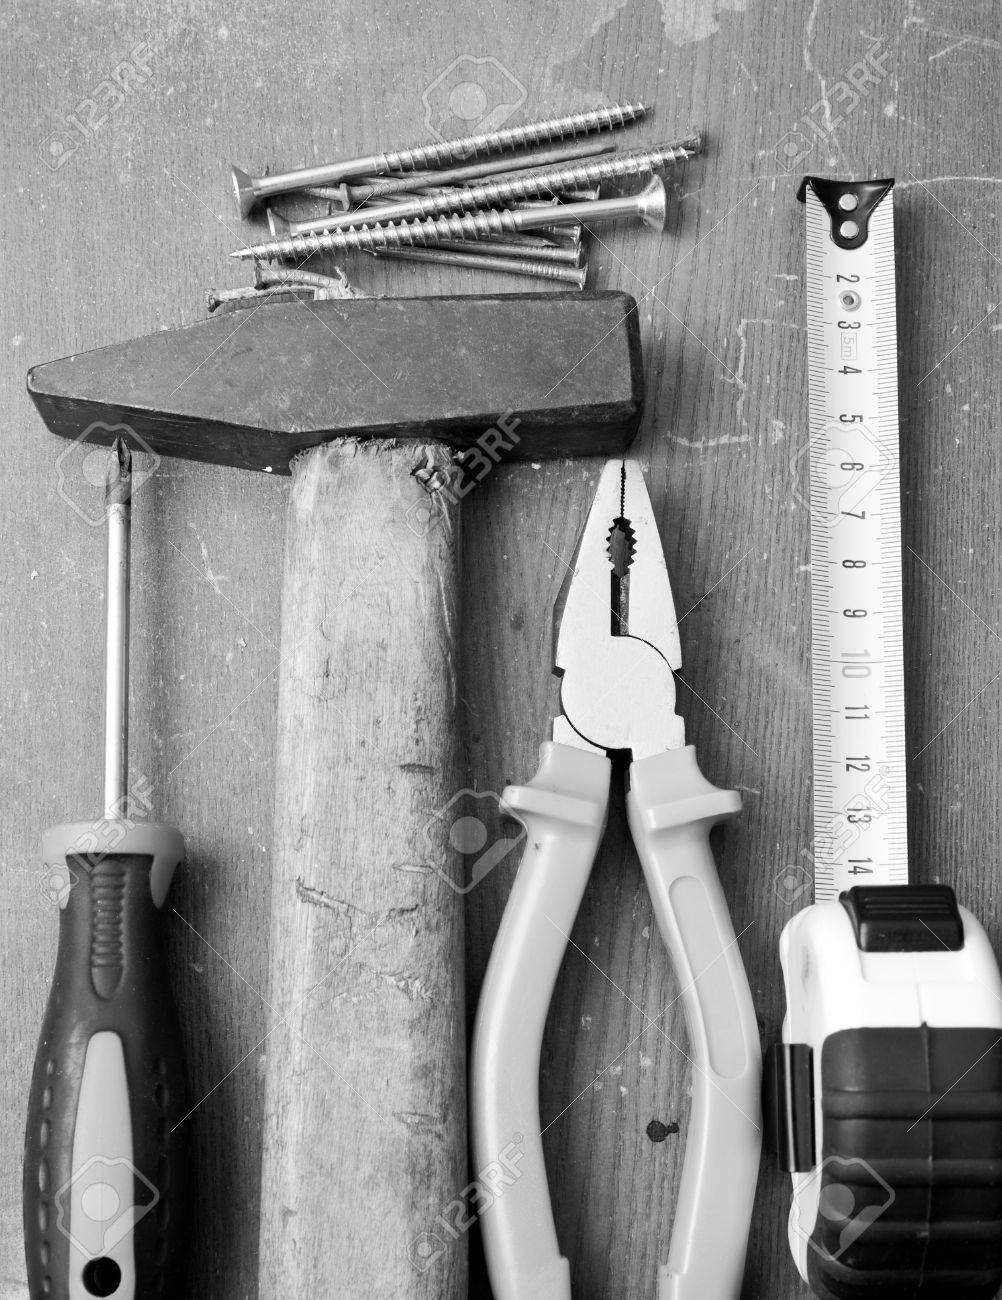 Black and white image of DIY tools and hardware used for home maintenance and repair Stock Photo - 14442529